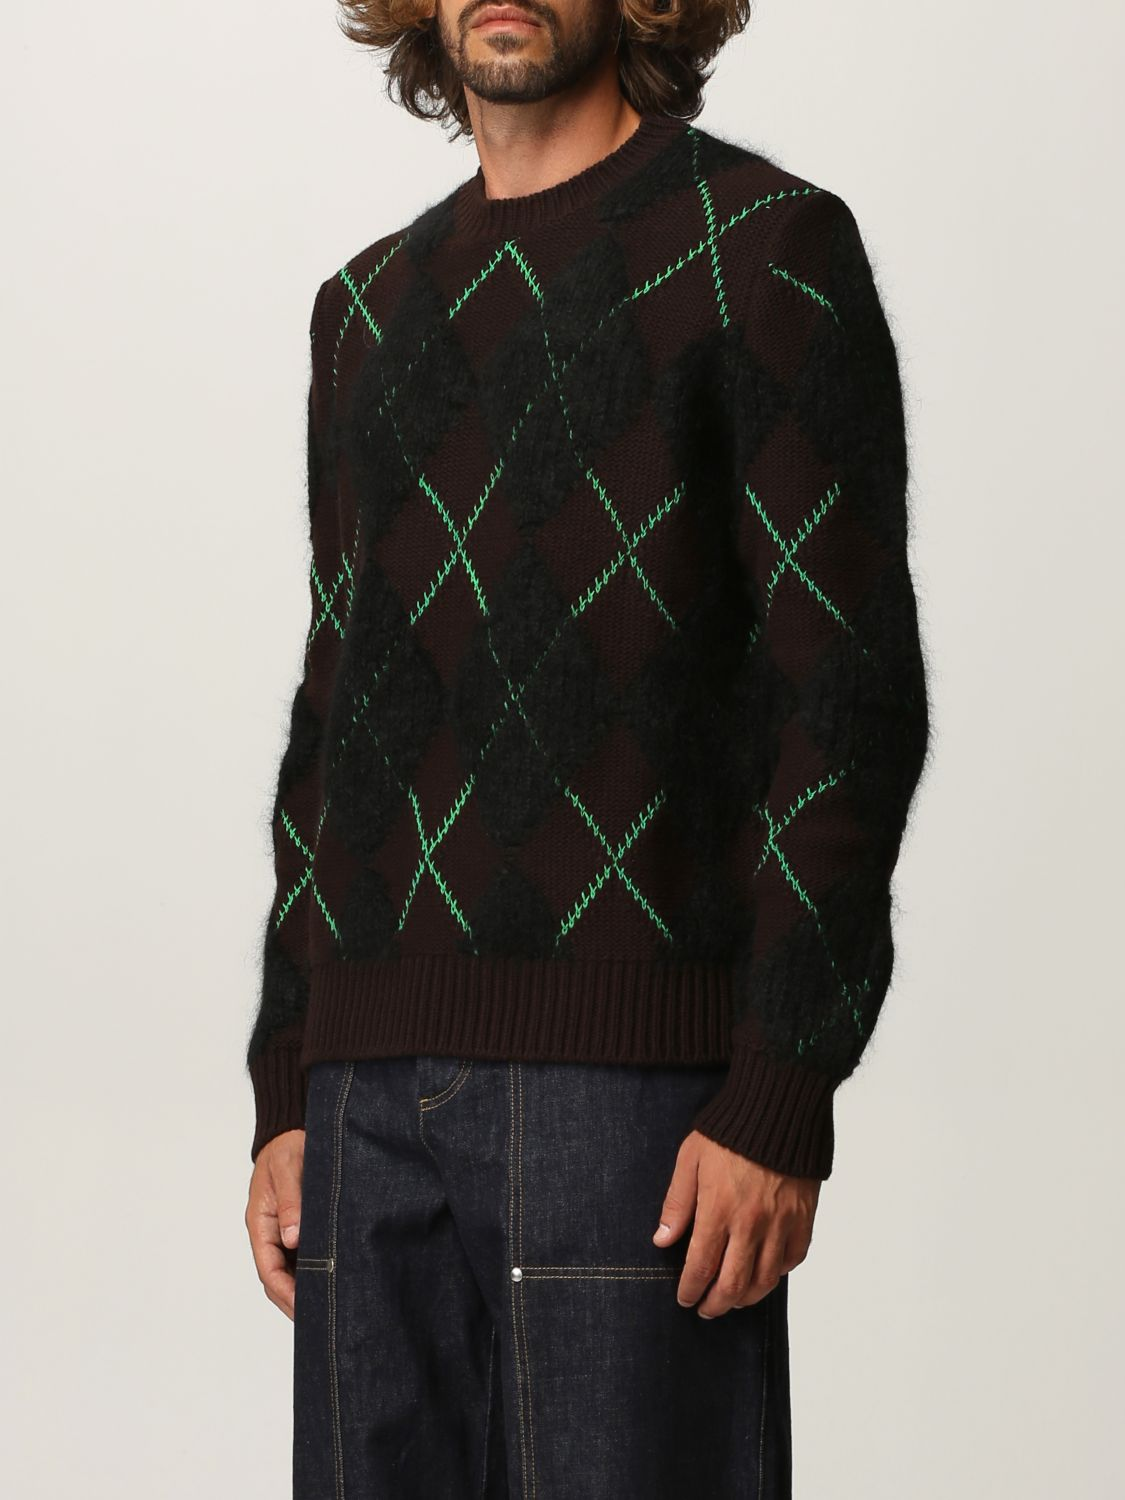 Sweater Bottega Veneta: Bottega Veneta sweater in wool and mohair dark 4